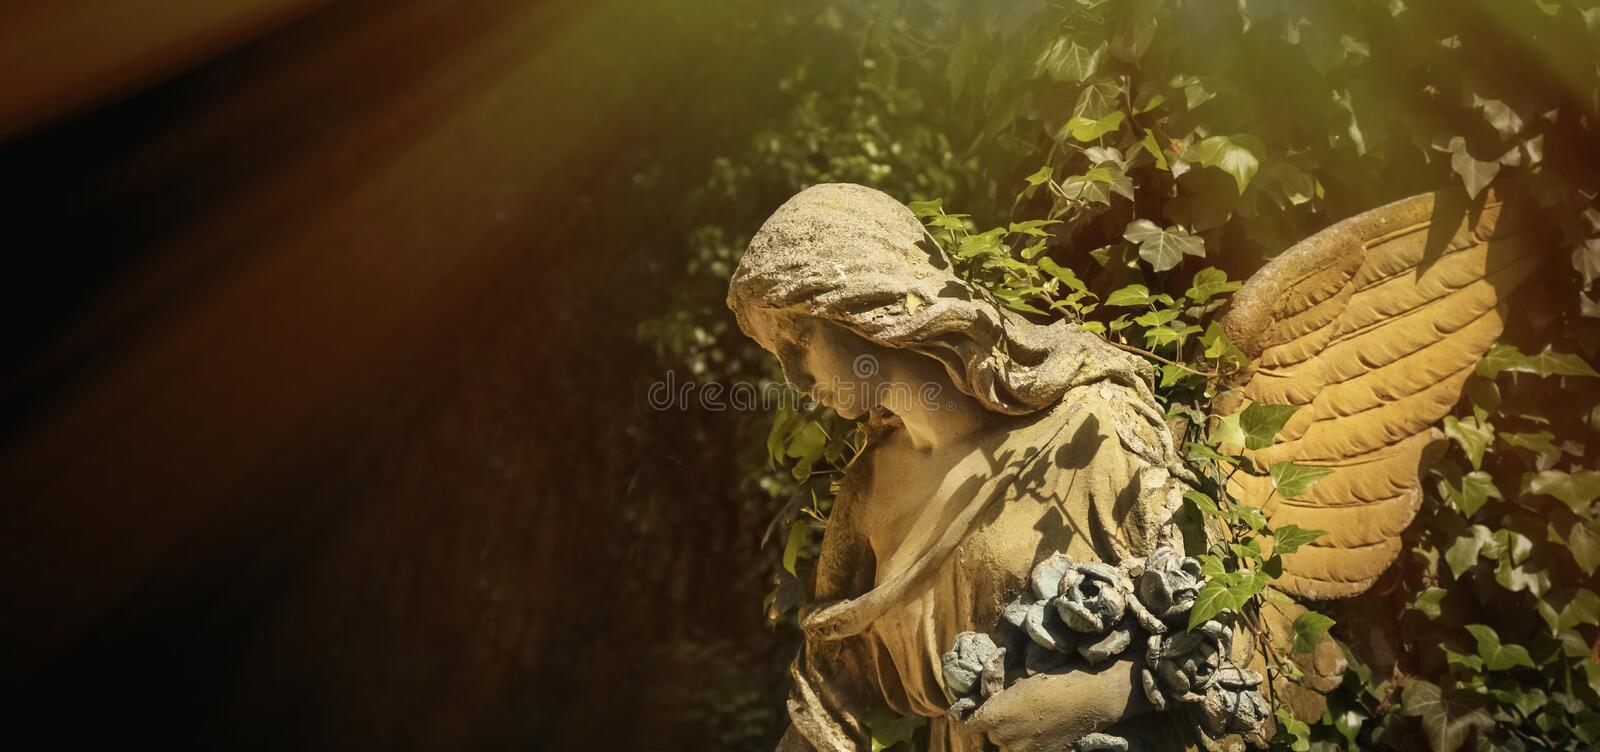 Antique sculpture of gold angel with wings against dark background.  stock photography